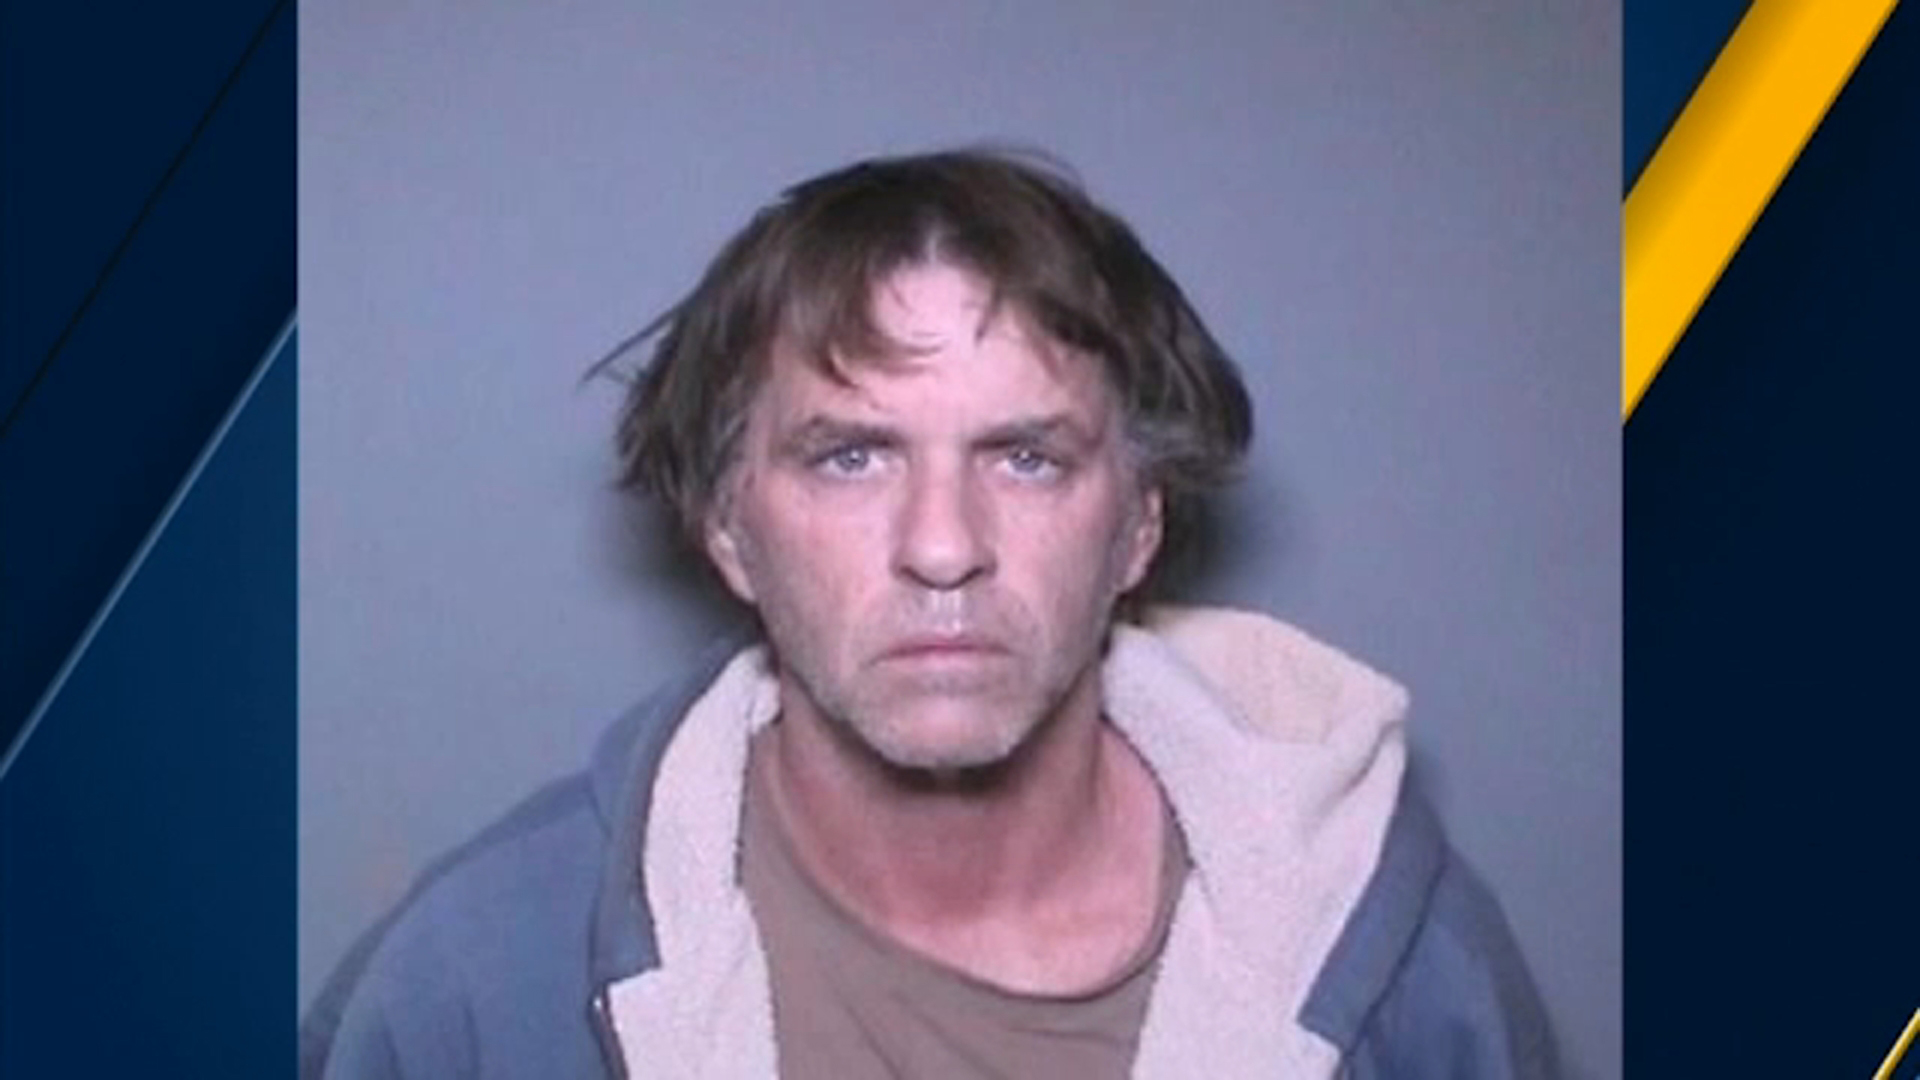 This is an undated photo of 53-year-old Kevin Konther, arrested by Orange County deputies on Thursday, Jan. 10, 2019.